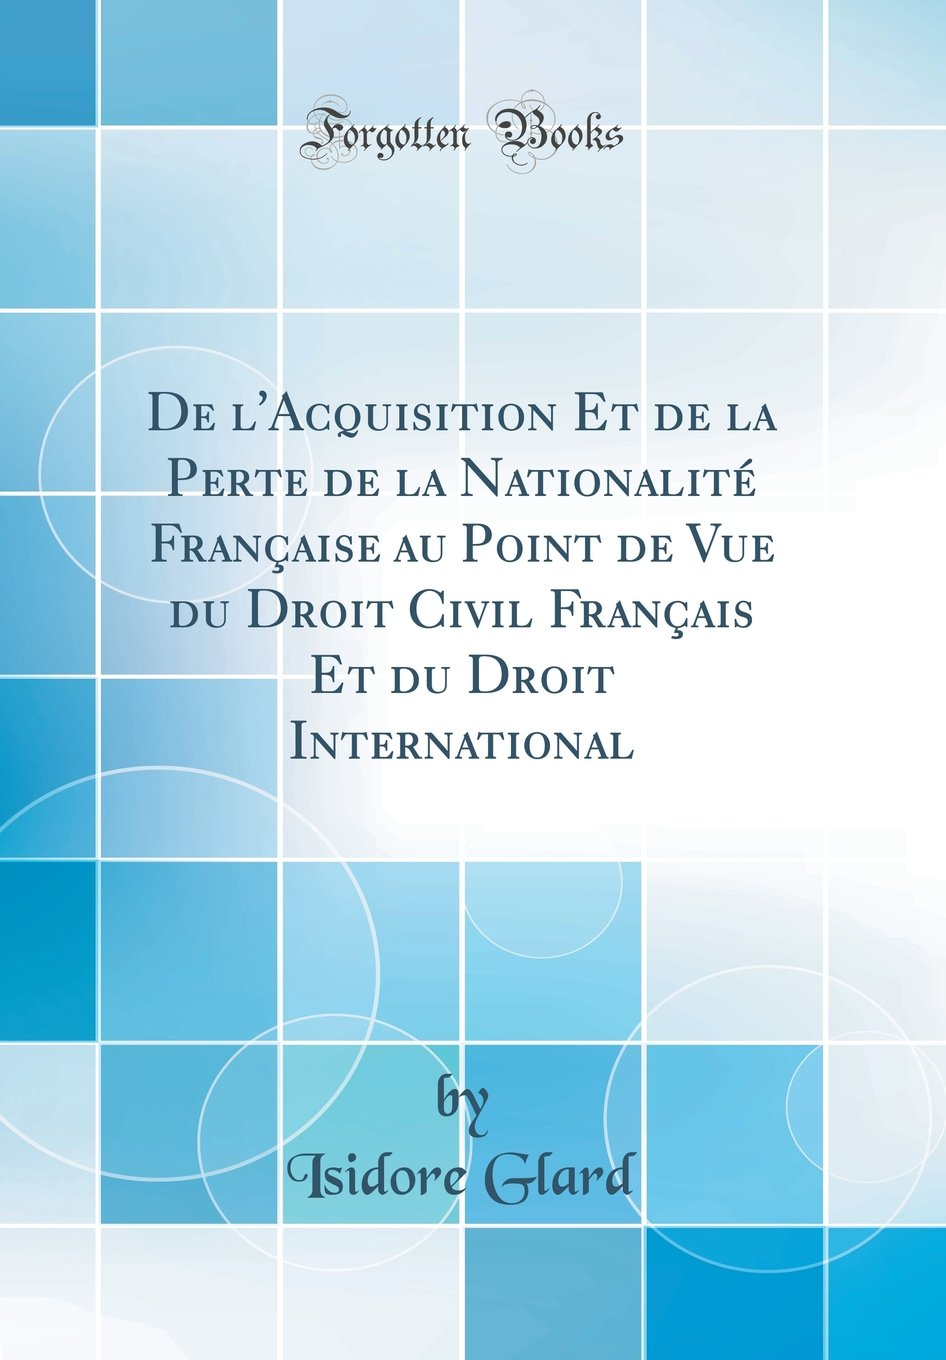 de l'Acquisition Et de la Perte de la Nationalité Française Au Point de Vue Du Droit Civil Français Et Du Droit International (Classic Reprint) (French Edition) ebook